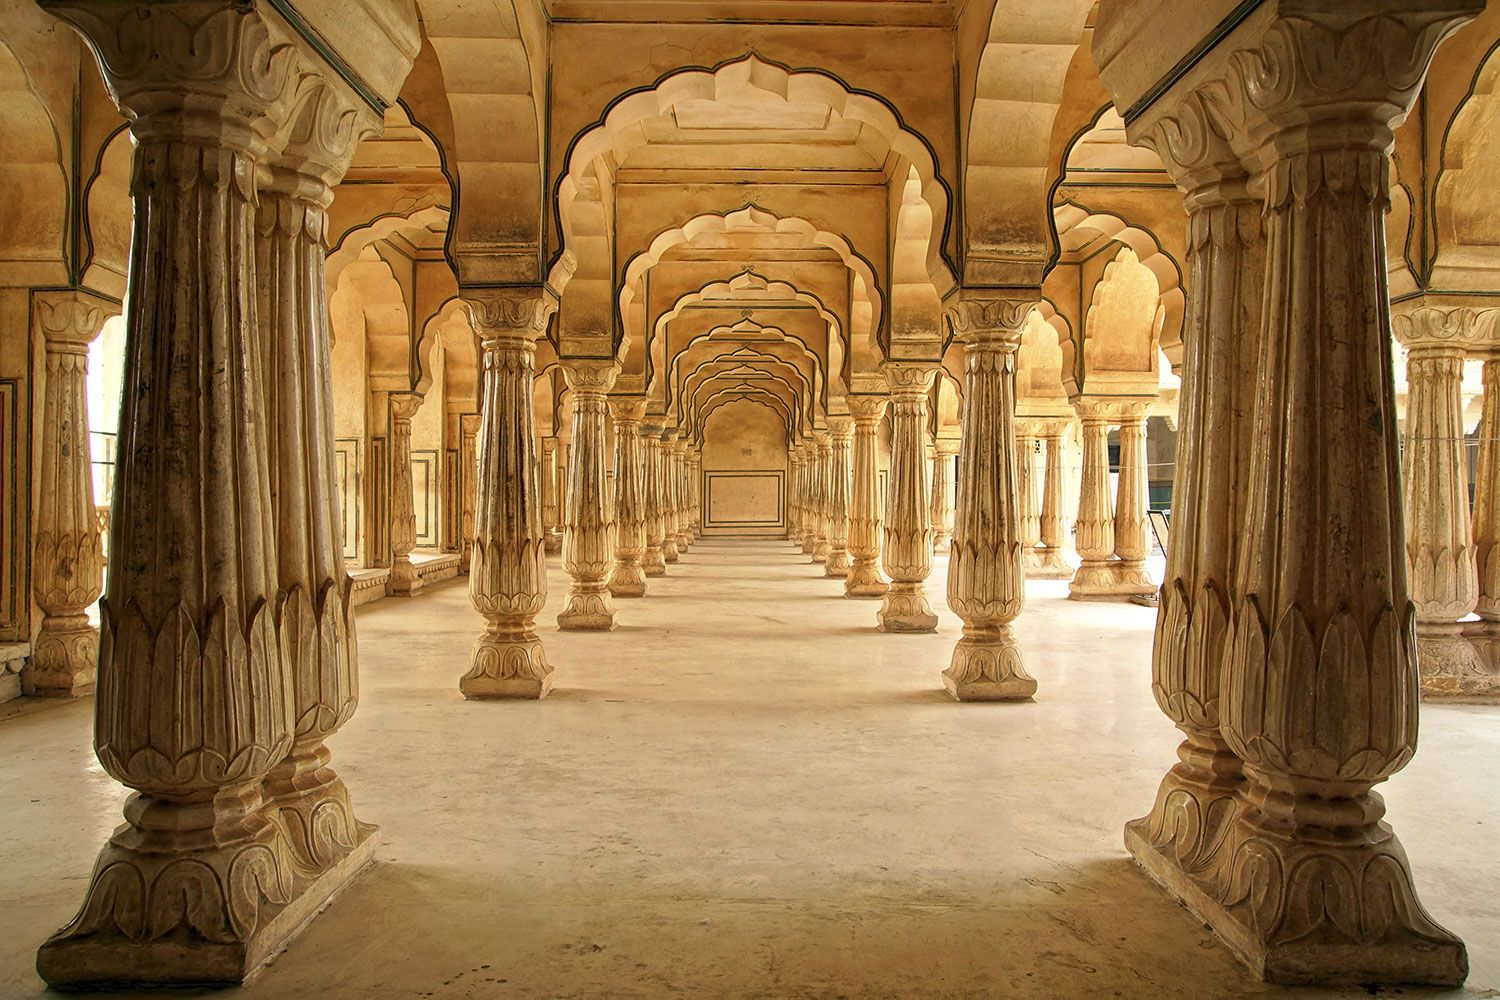 Related image Jaipur, Indian history, India travel places